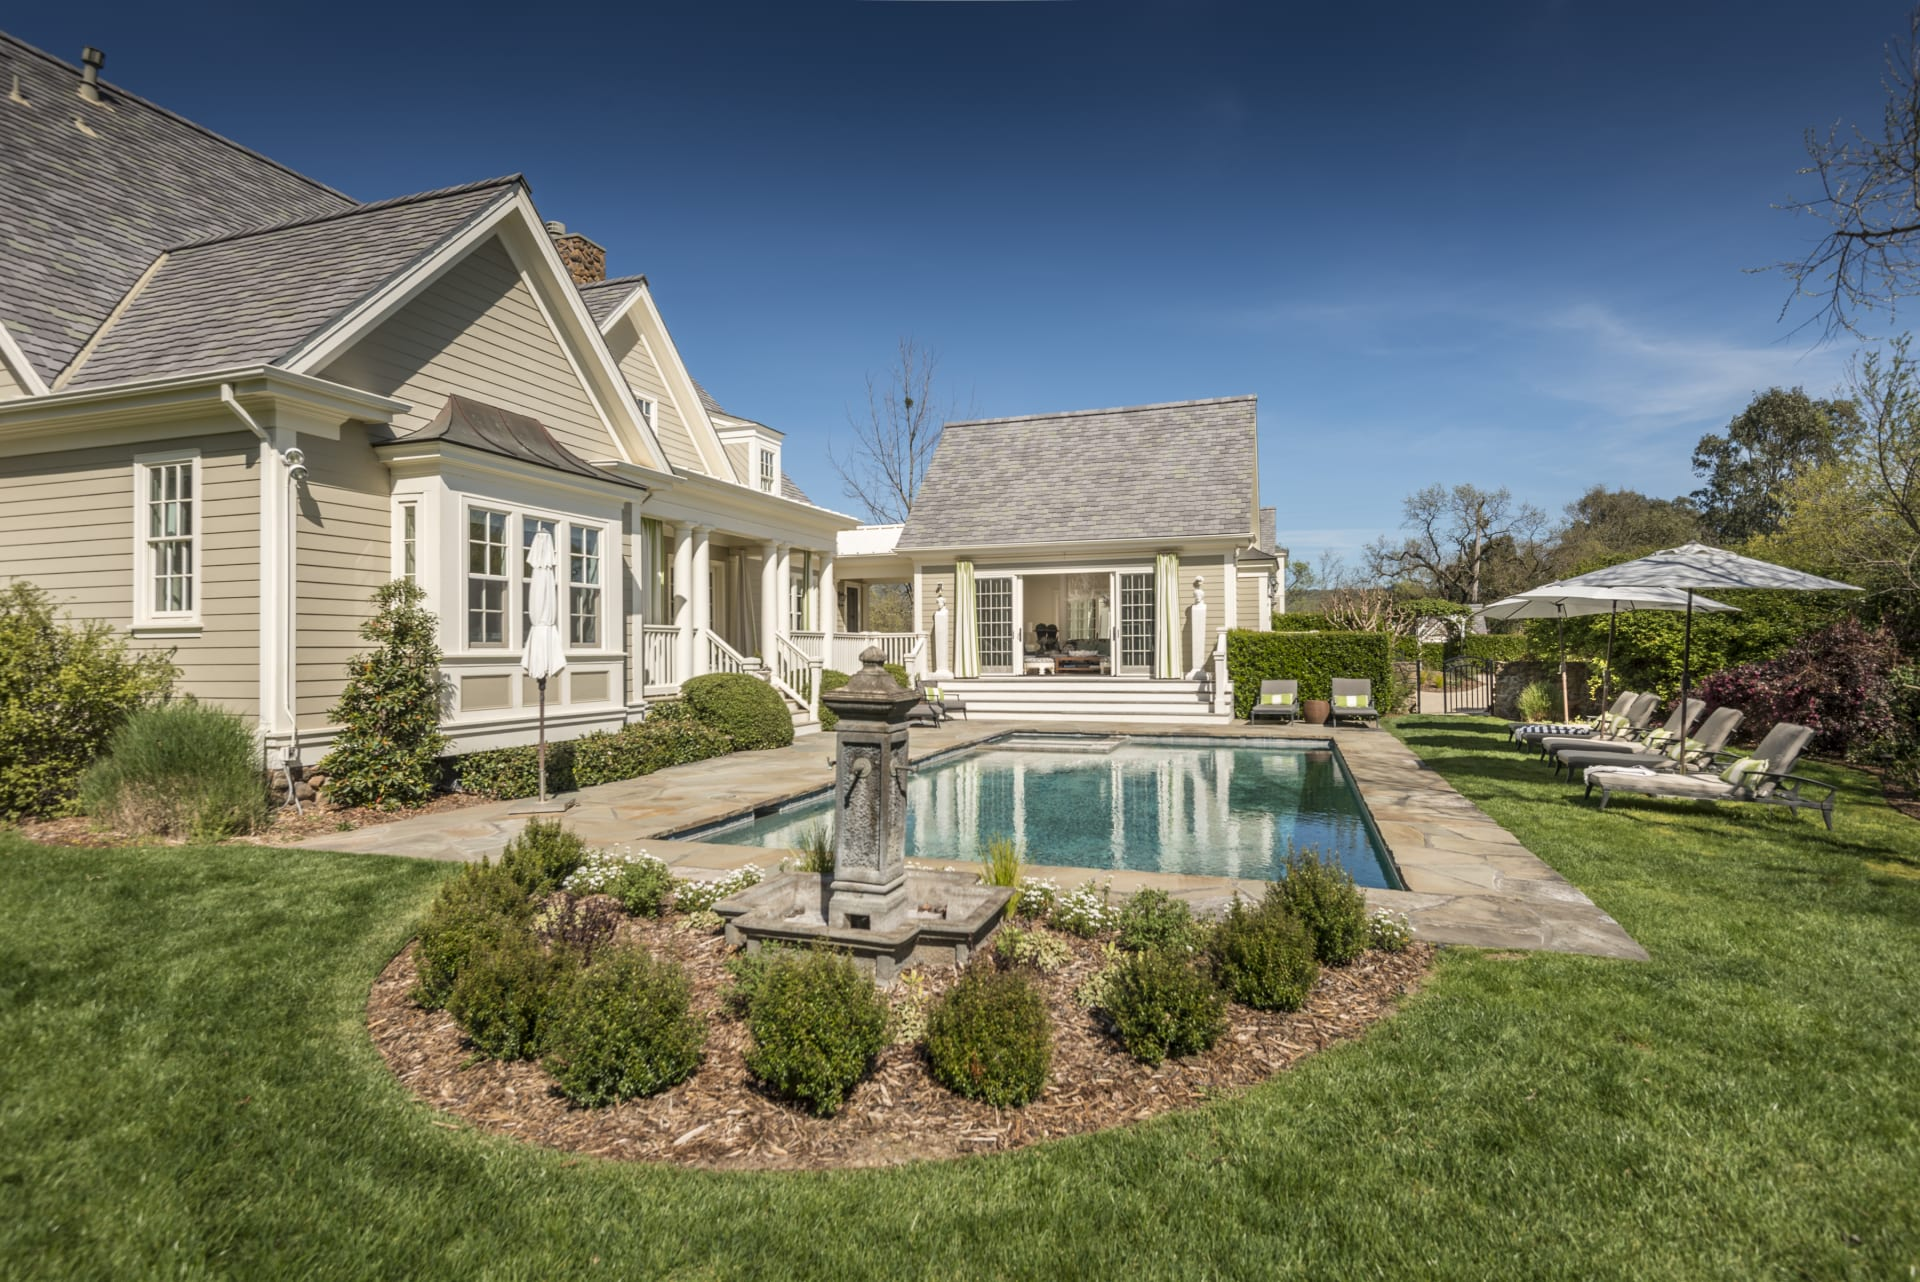 Sold | Classic Sonoma Estate